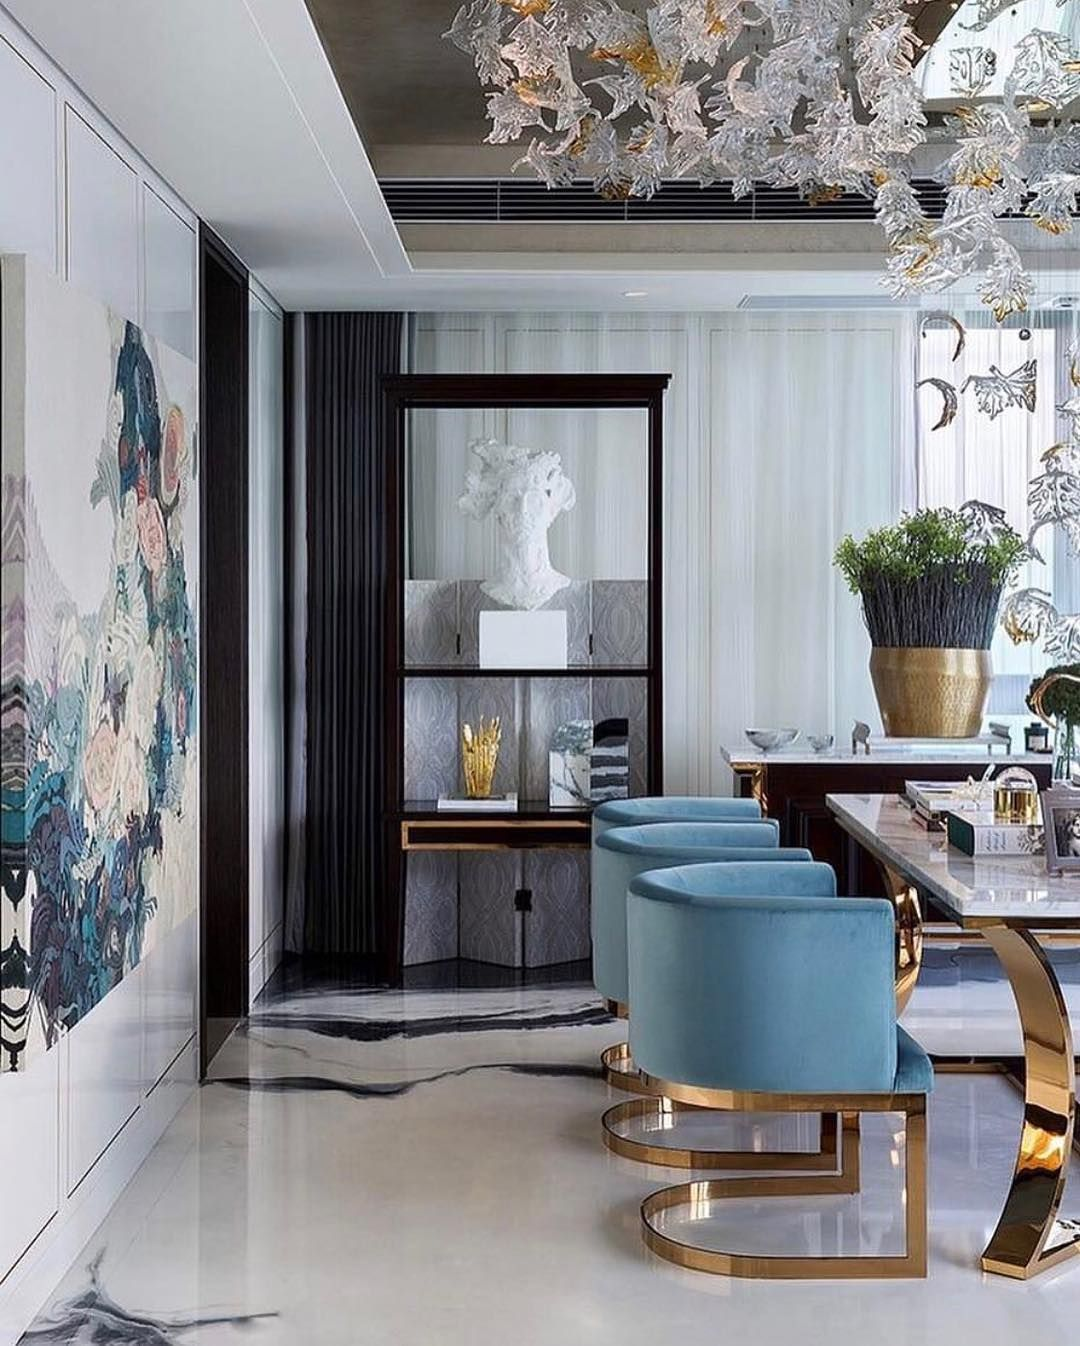 Home hall decke design einfach pin by alexandra mdp on living room in   pinterest  dining